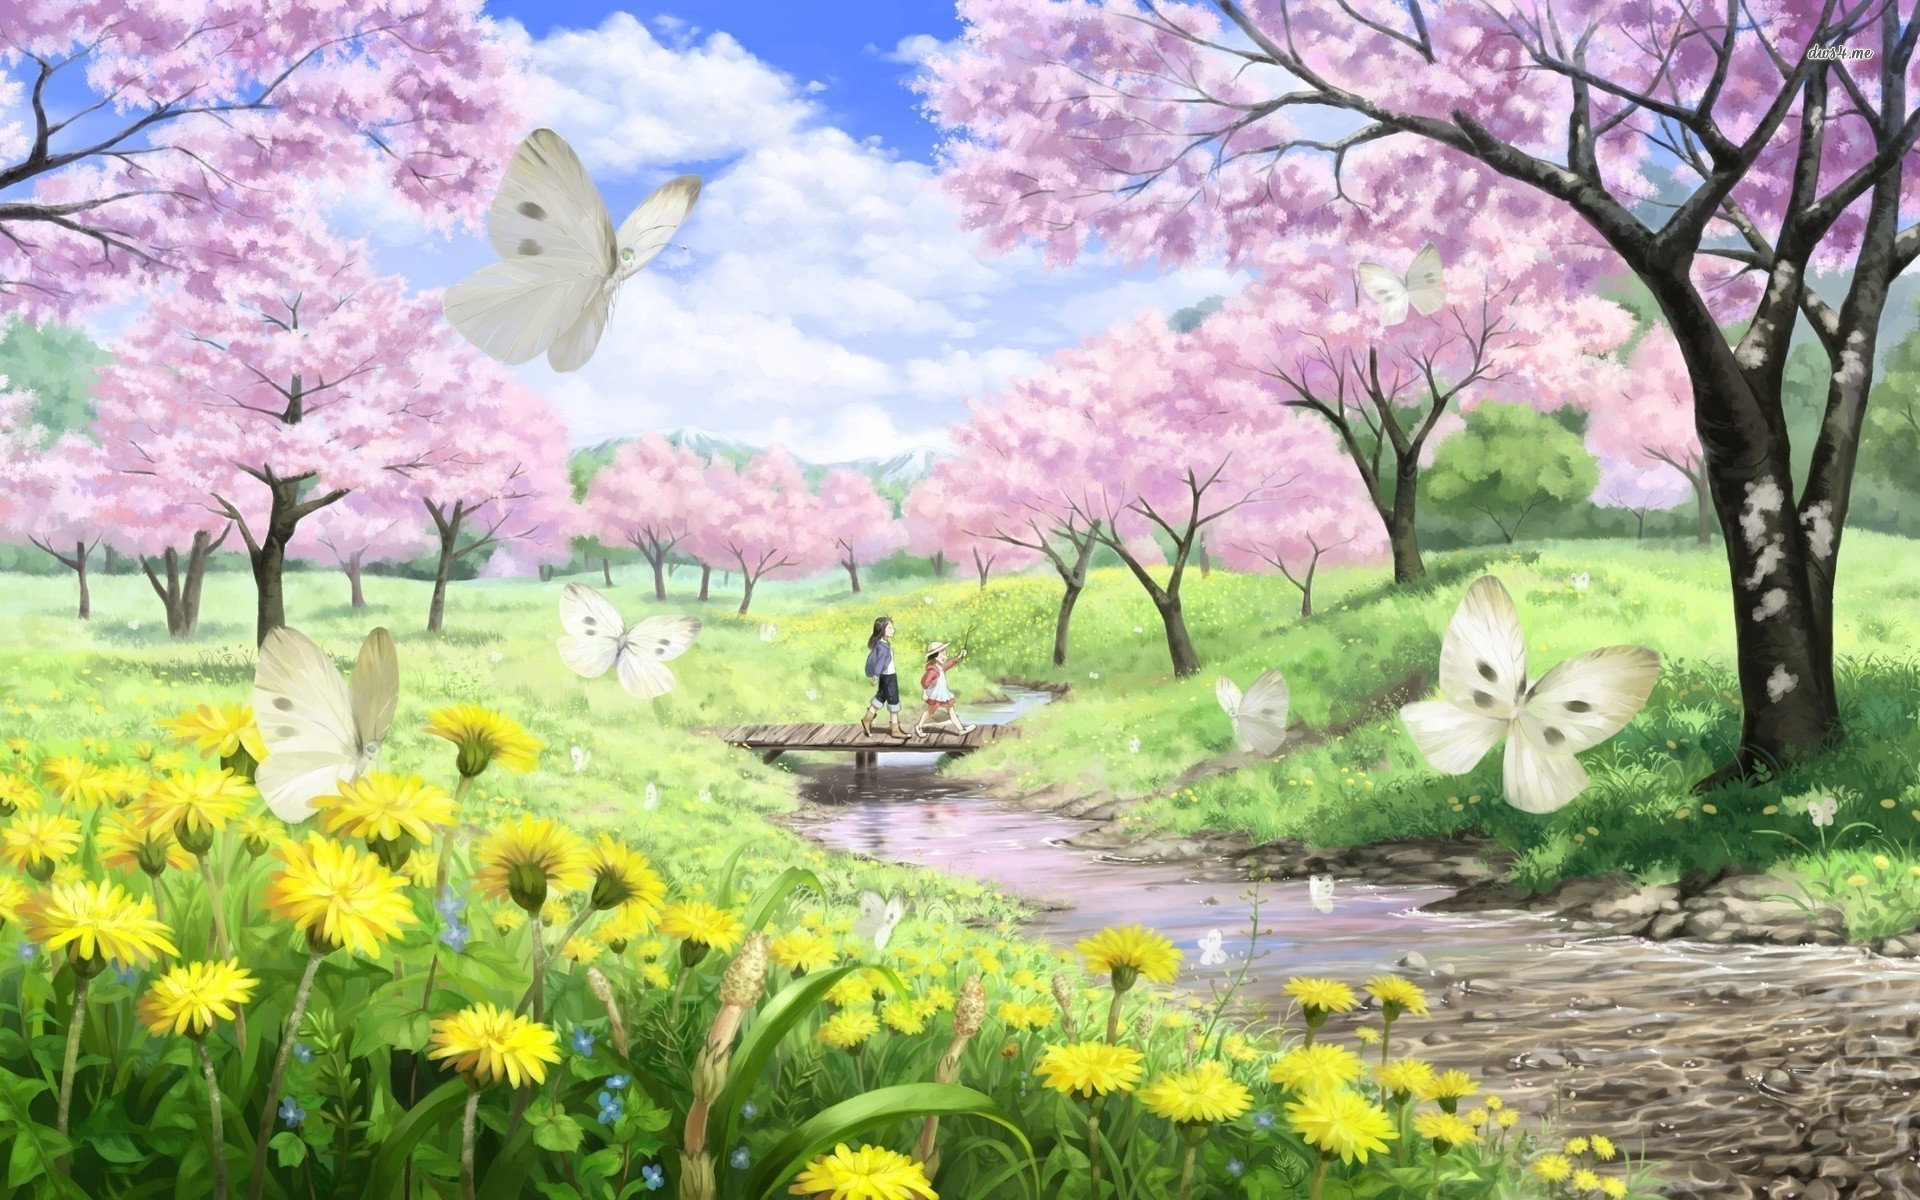 Wallpaper pictures of spring Wallpaper Art and Photo Wall Murals - Murals Your Way